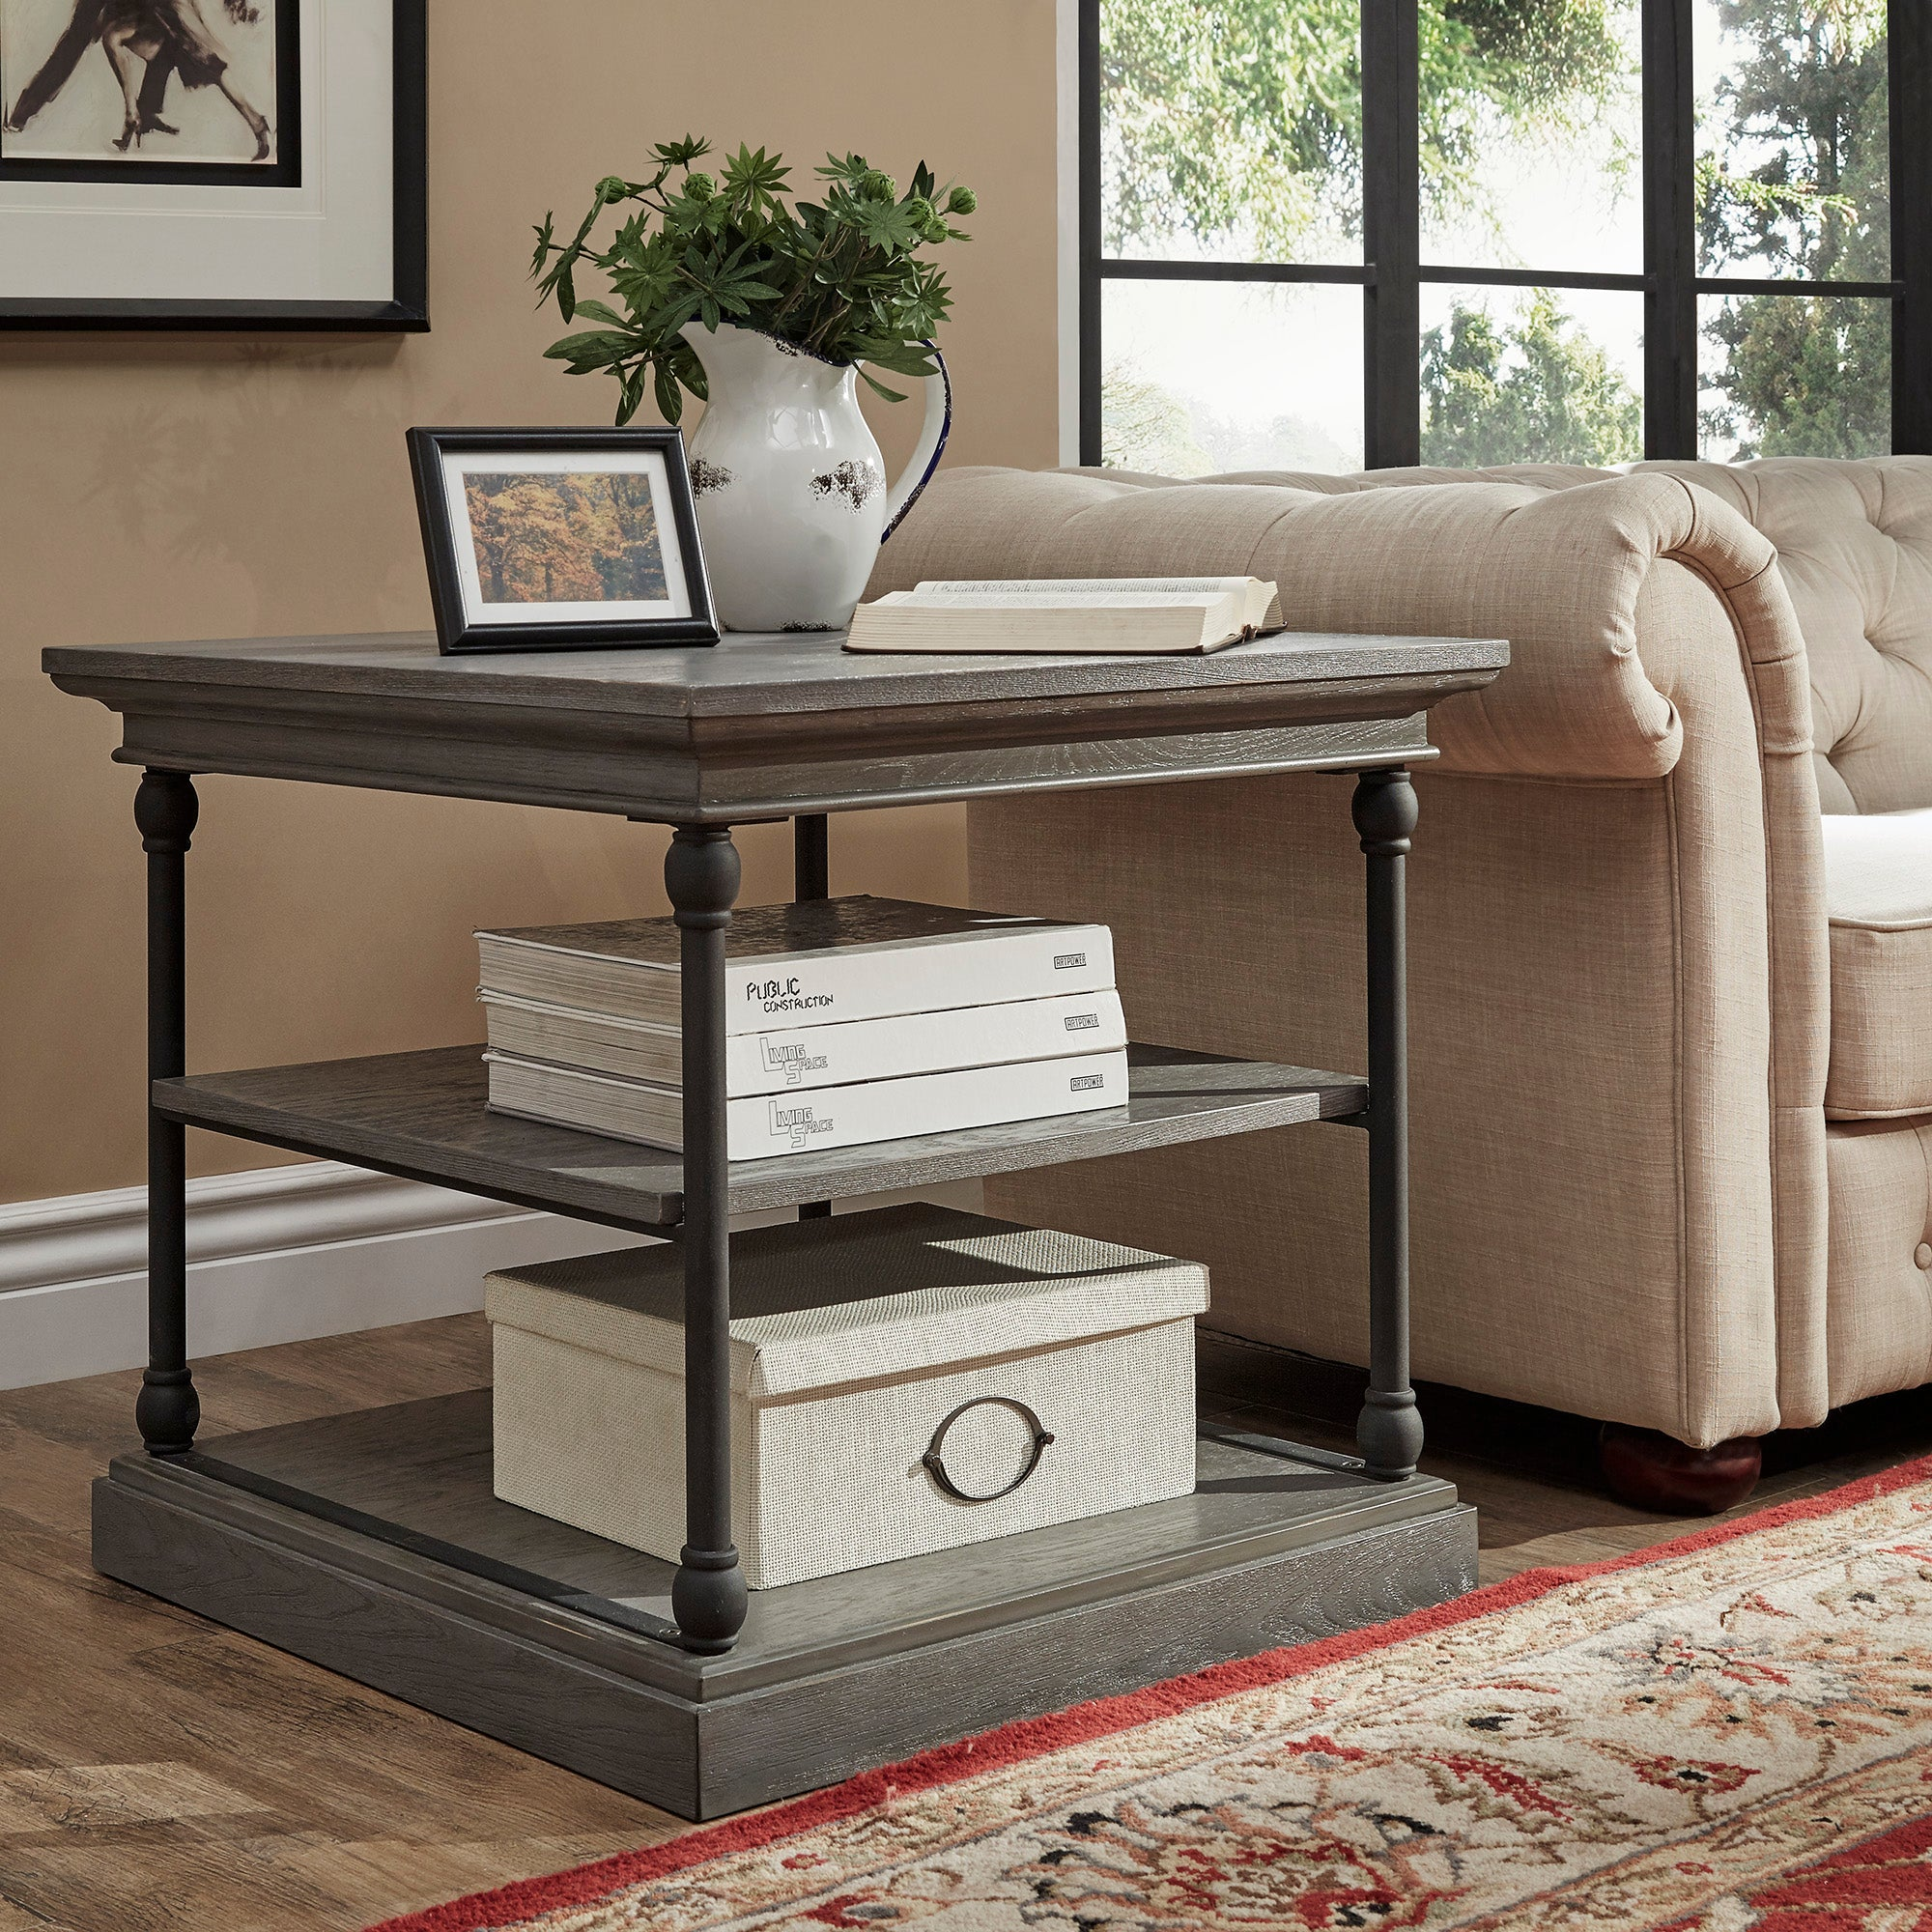 Cornice Accent Storage Side Table - grey color finish